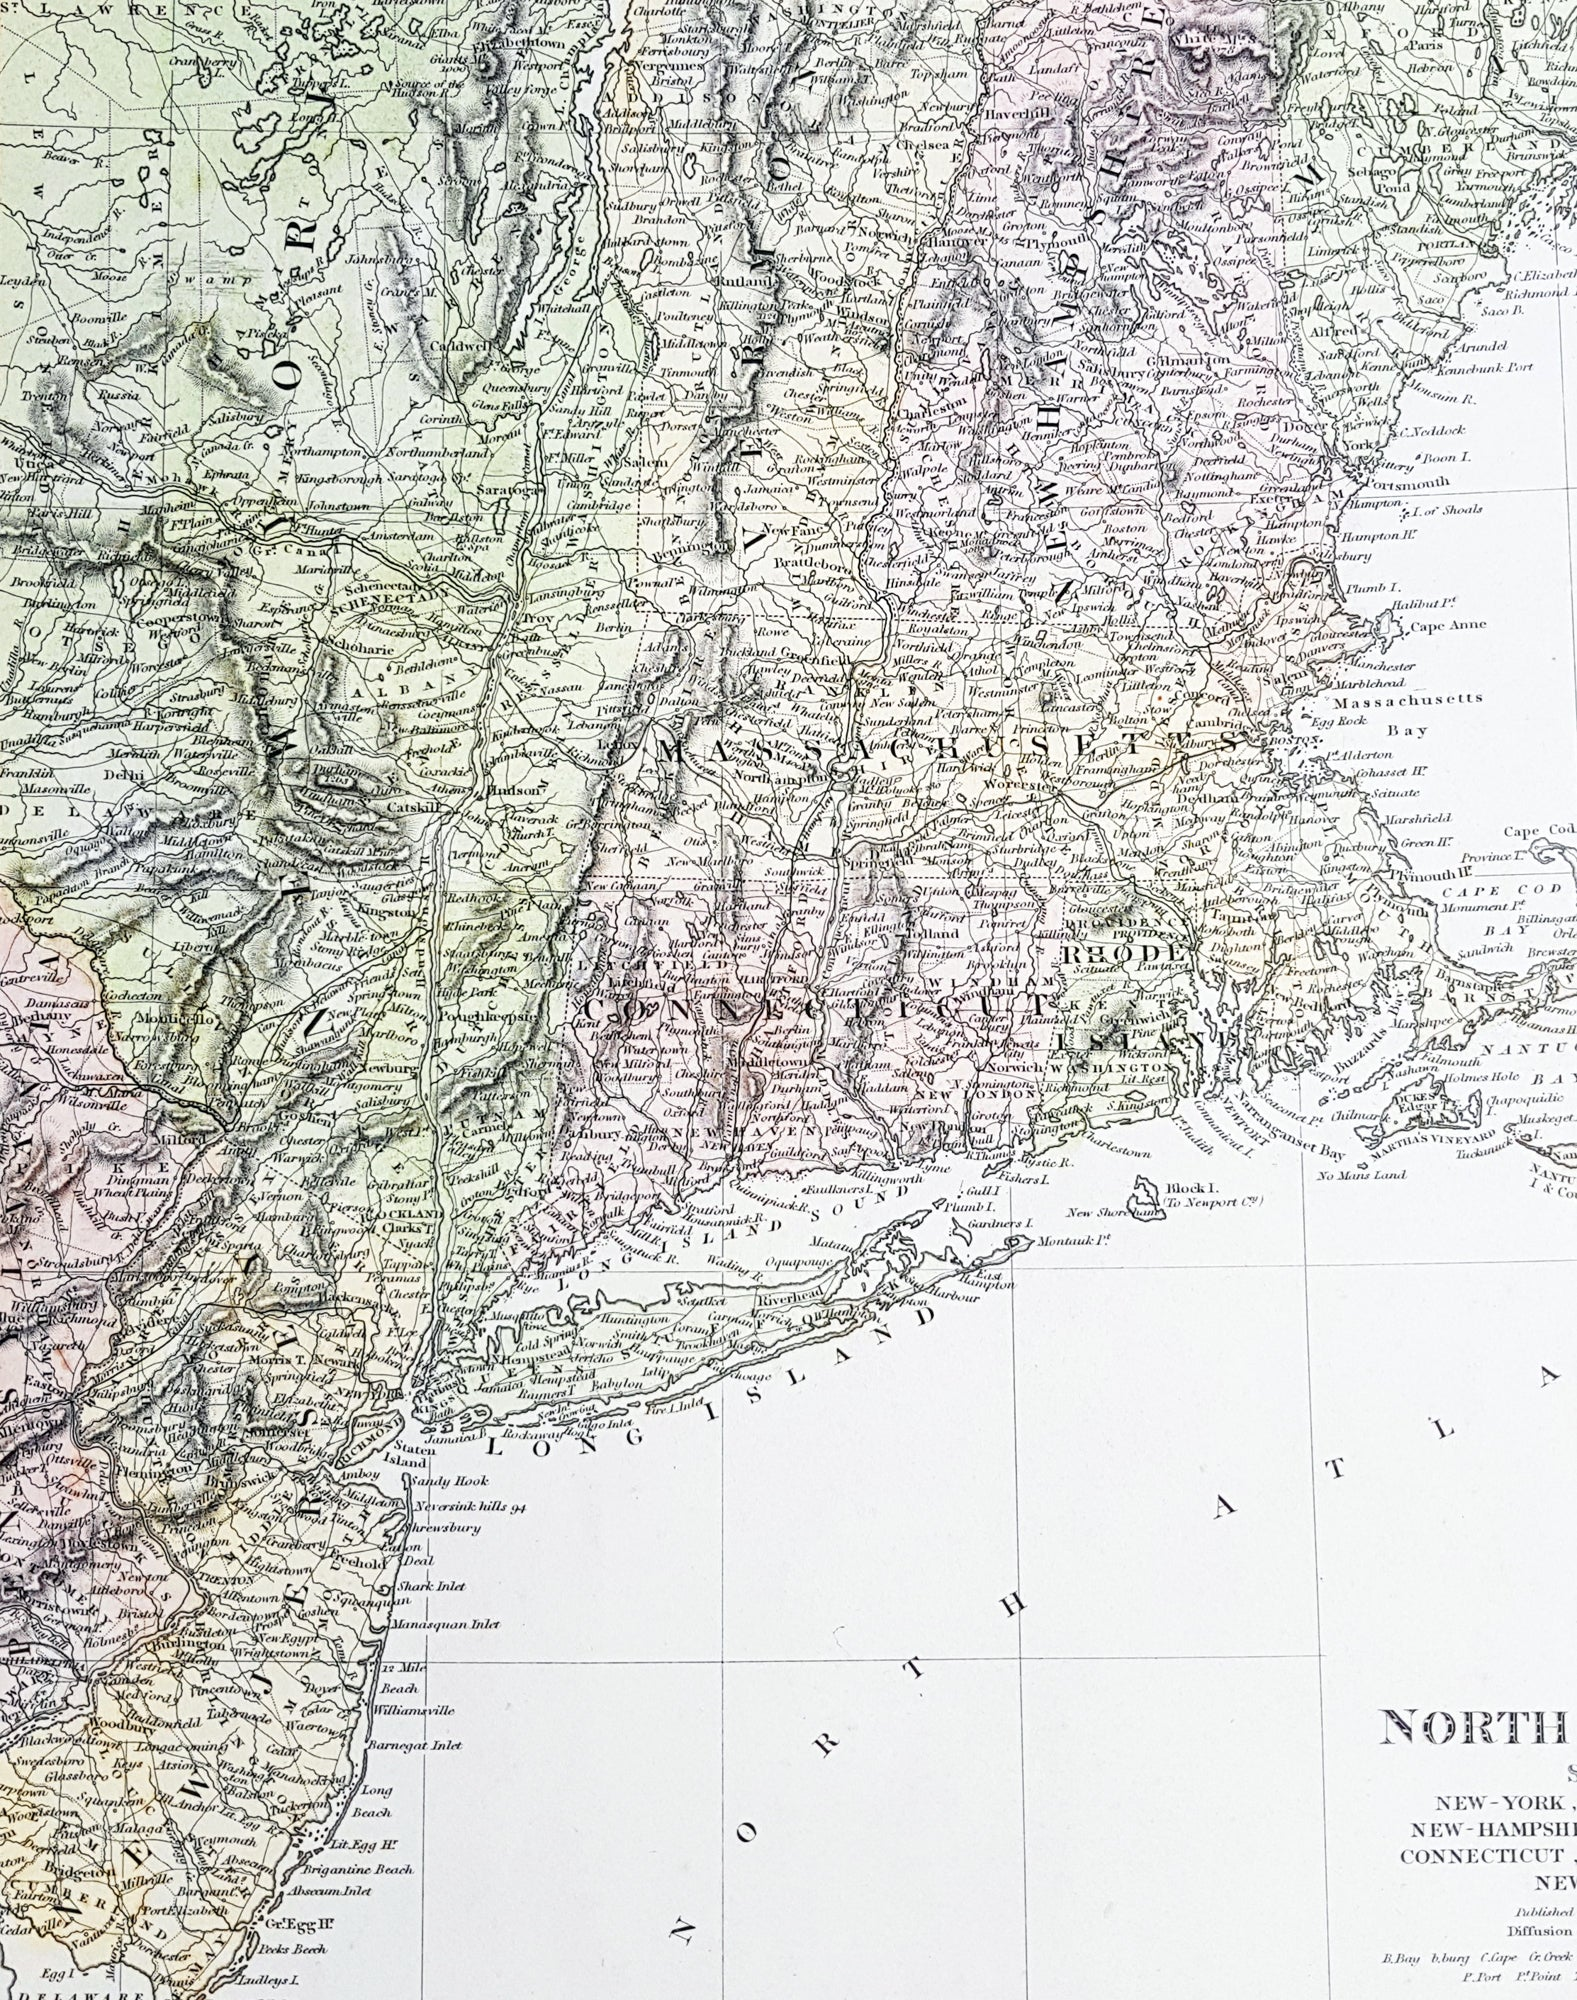 1832 SDUK Antique Map of New York, New England & New Jersey - North Old Maps Of New Jersey Coast on map of jersey shore towns, map of jersey shore coast, map of europe coast, map maryland coast, map of southeastern united states coast, map of long beach island jersey shore, map of north jersey beaches, map of tybee island coast, map new york coast, map of washinton coast, map of lake michigan coast, map of singapore coast, map of eastern u.s. coast, map of thailand coast, map of biloxi coast, map of pismo beach coast, new jersey map east coast, map of south jersey coast, map of eastern united states coast, map of south atlantic coast,